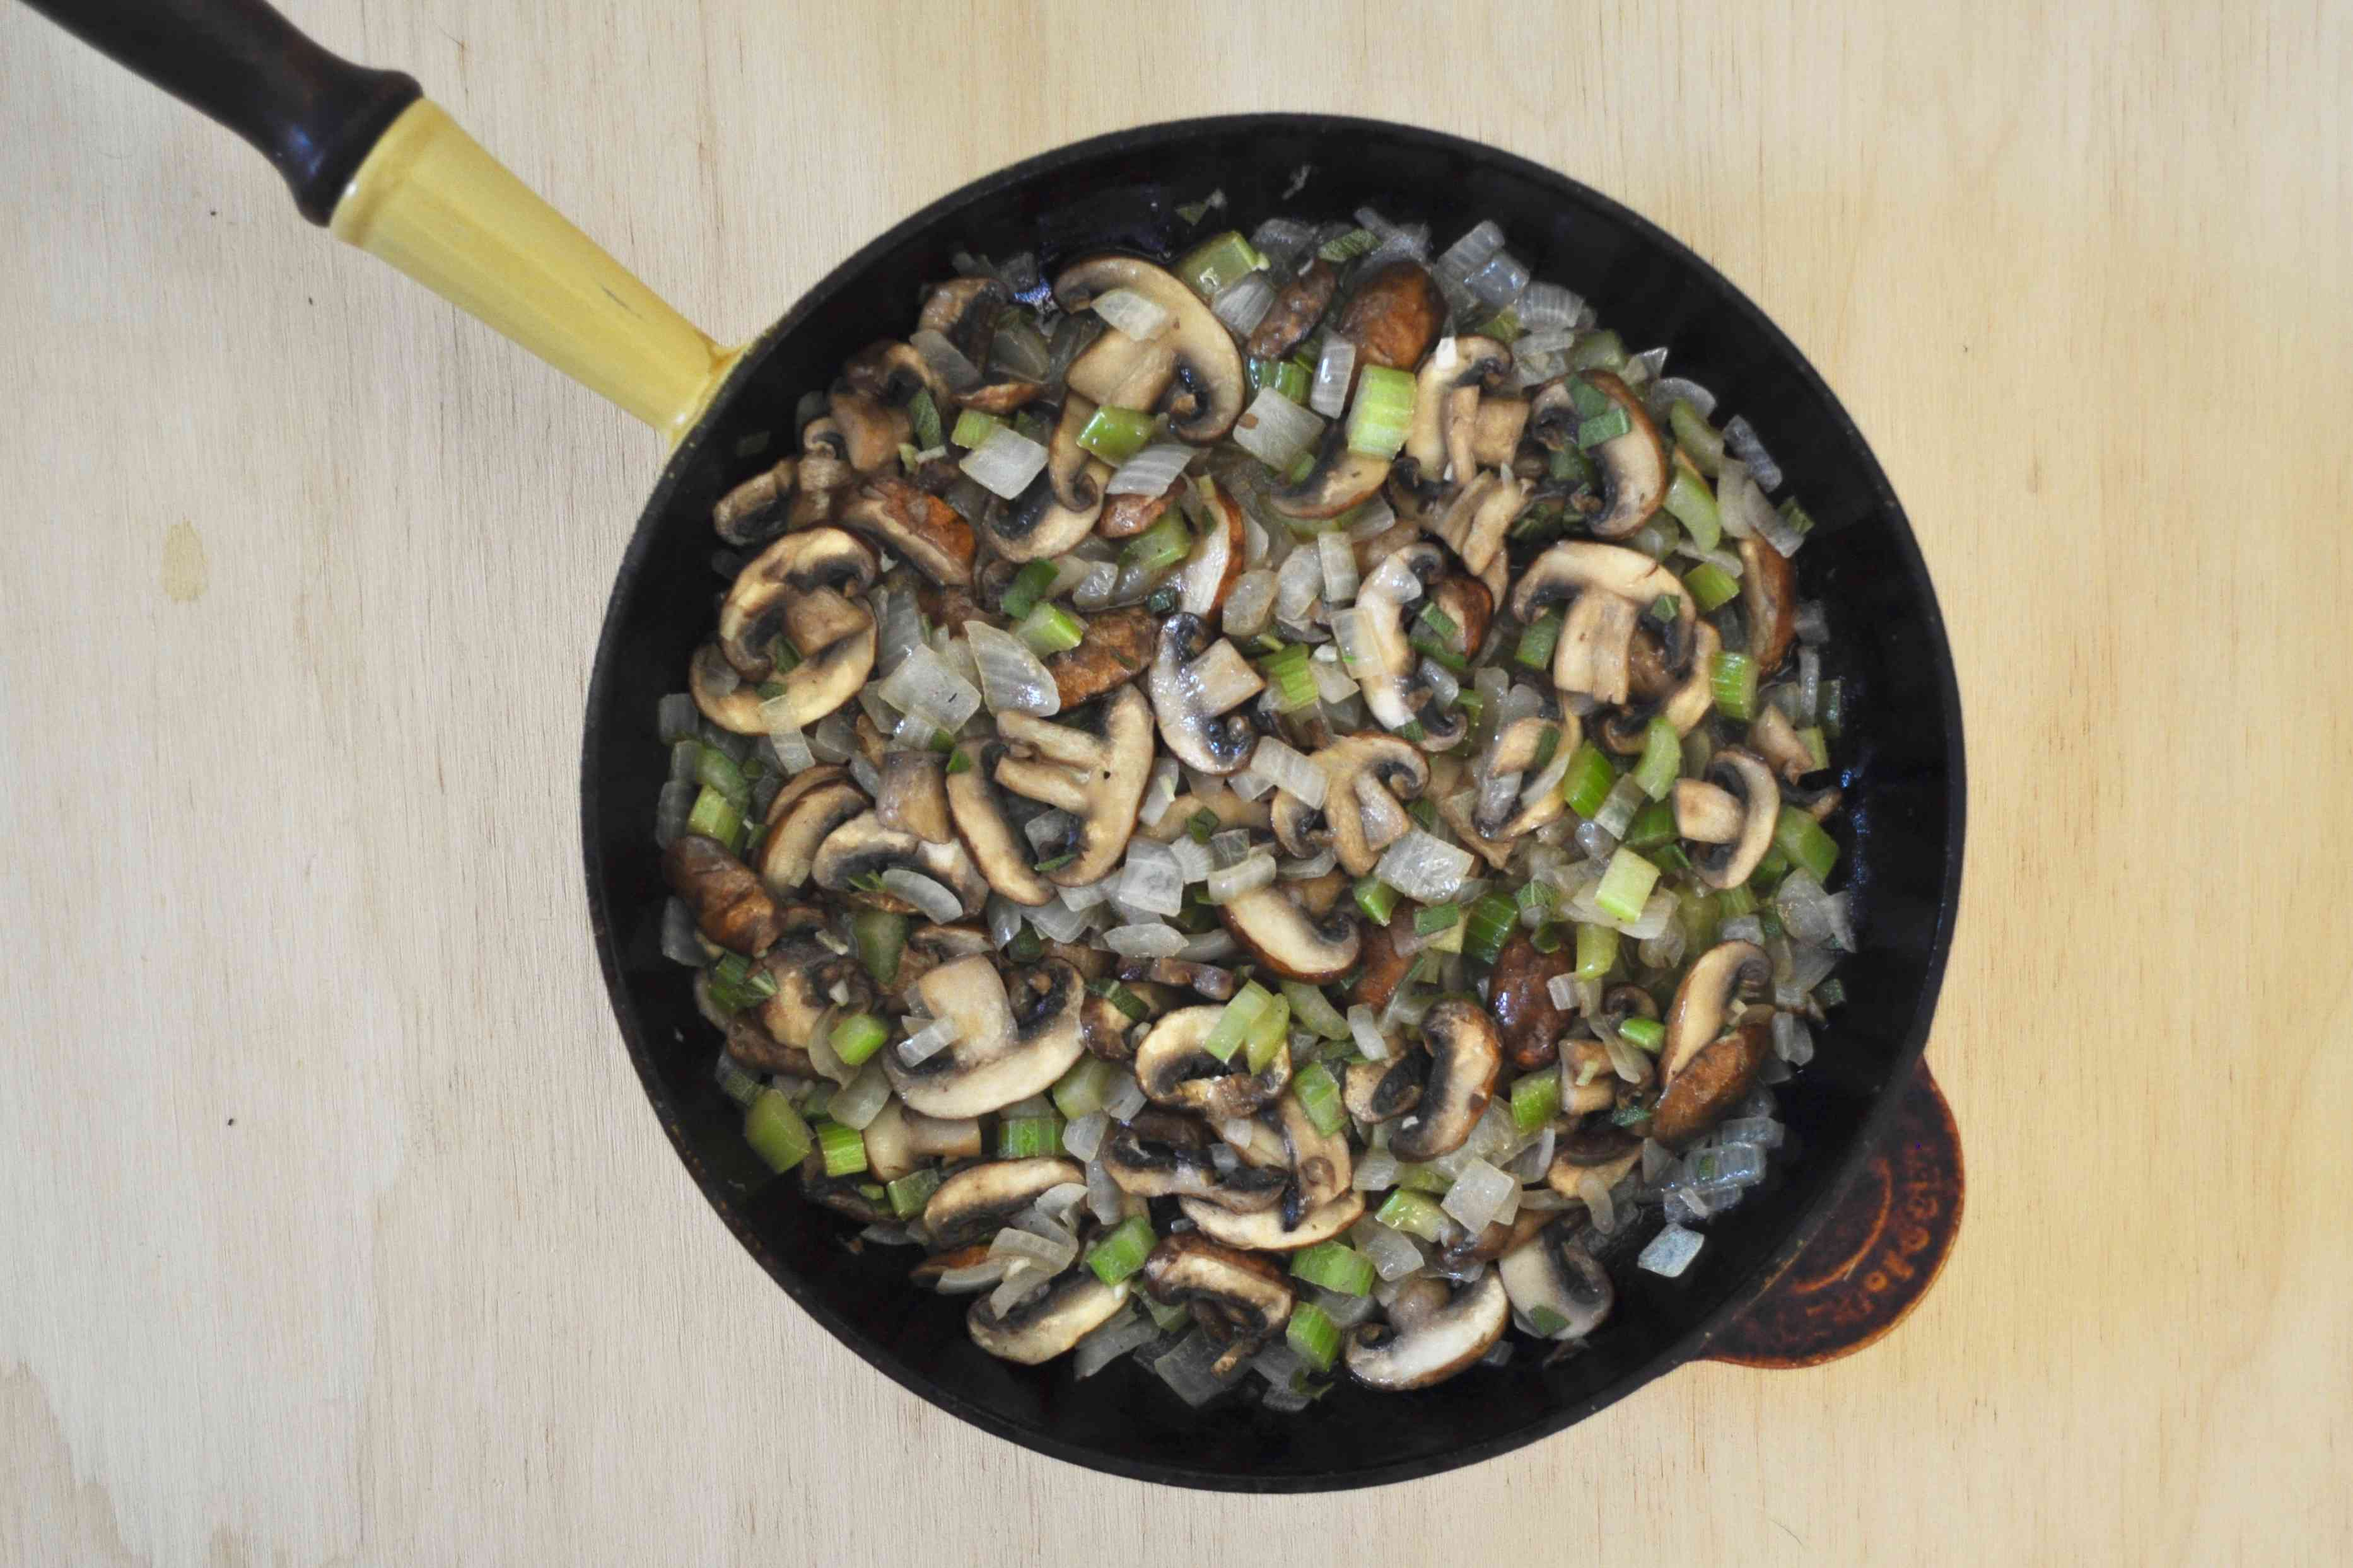 Saute onions, celery, and mushrooms for wild rice stuffing